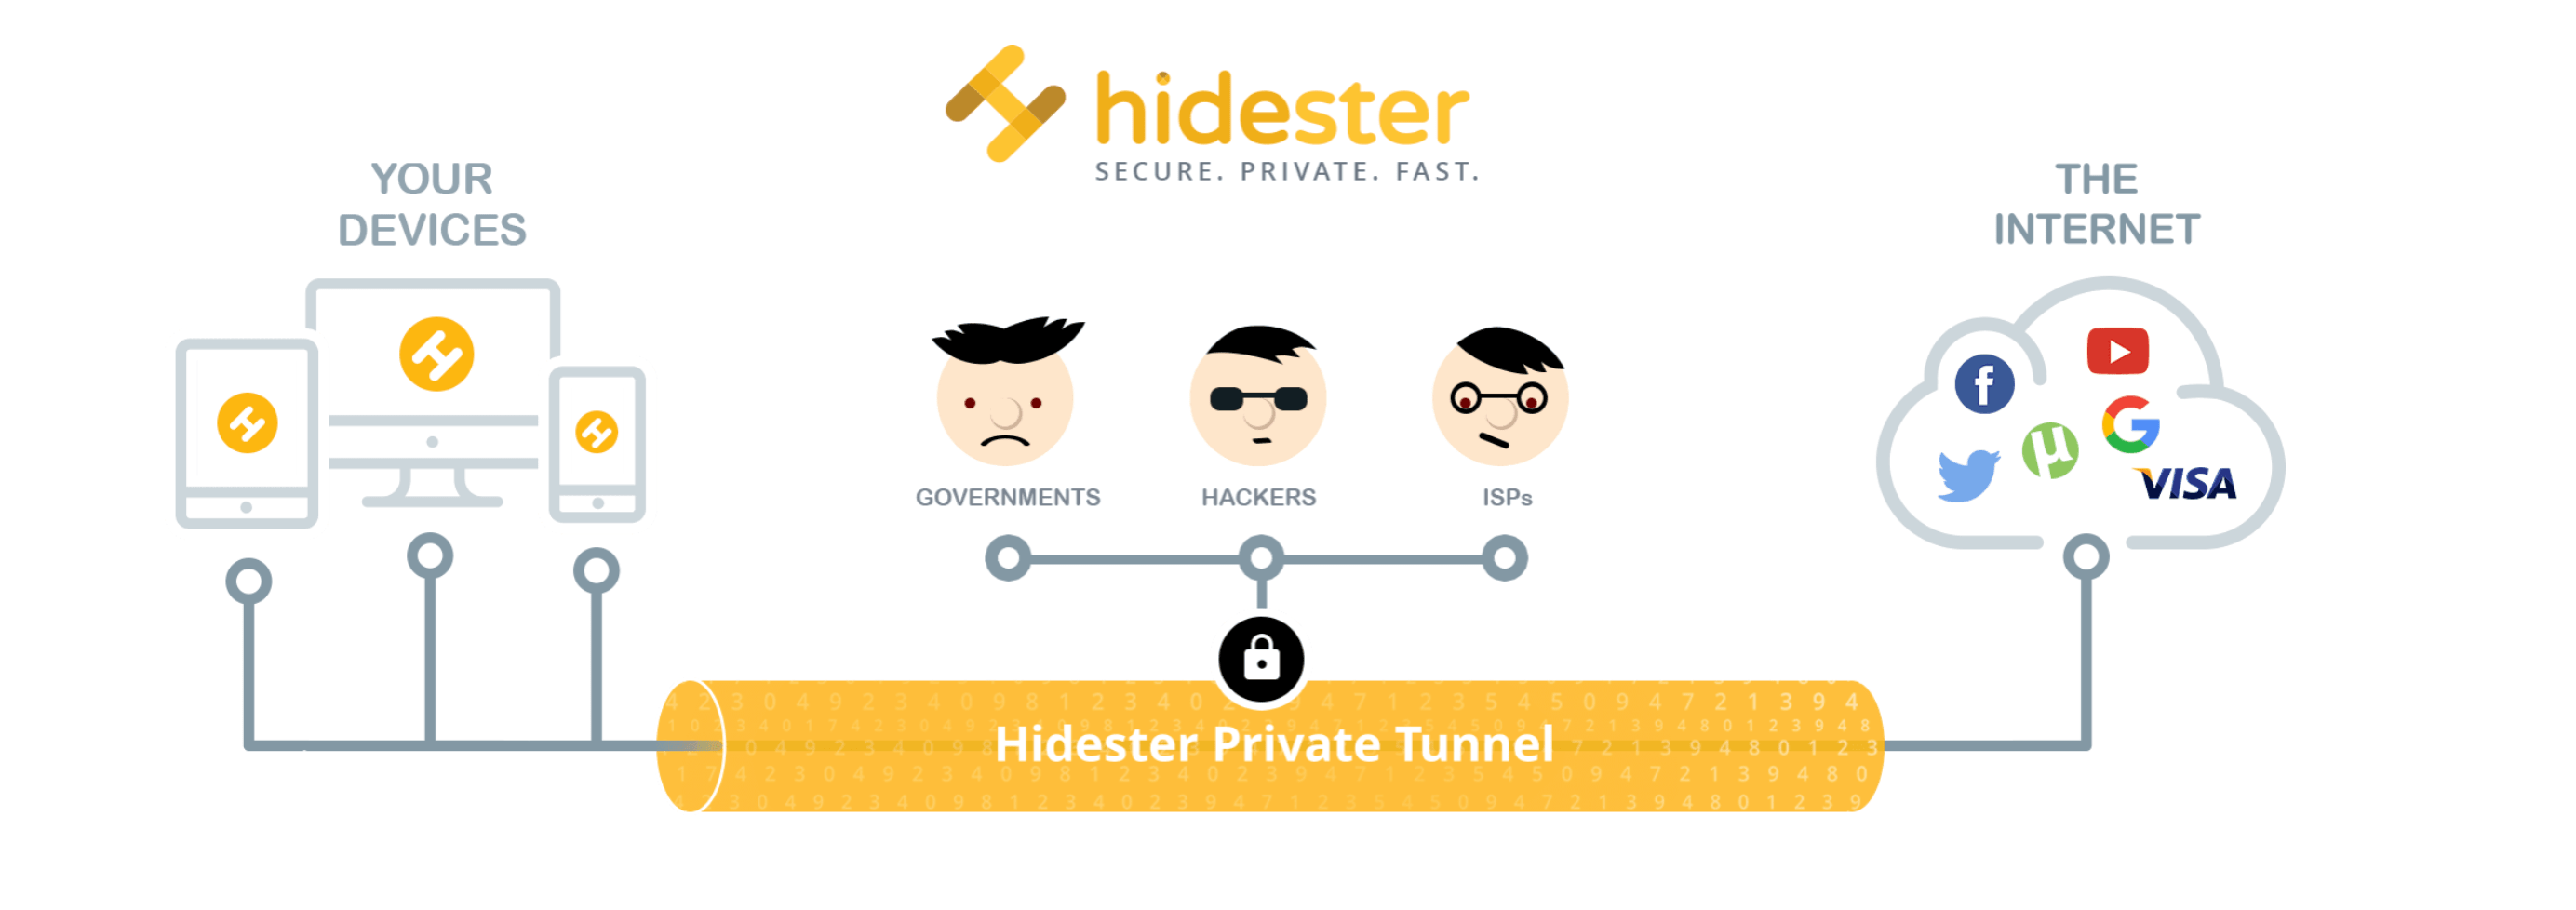 Hidester Graphic